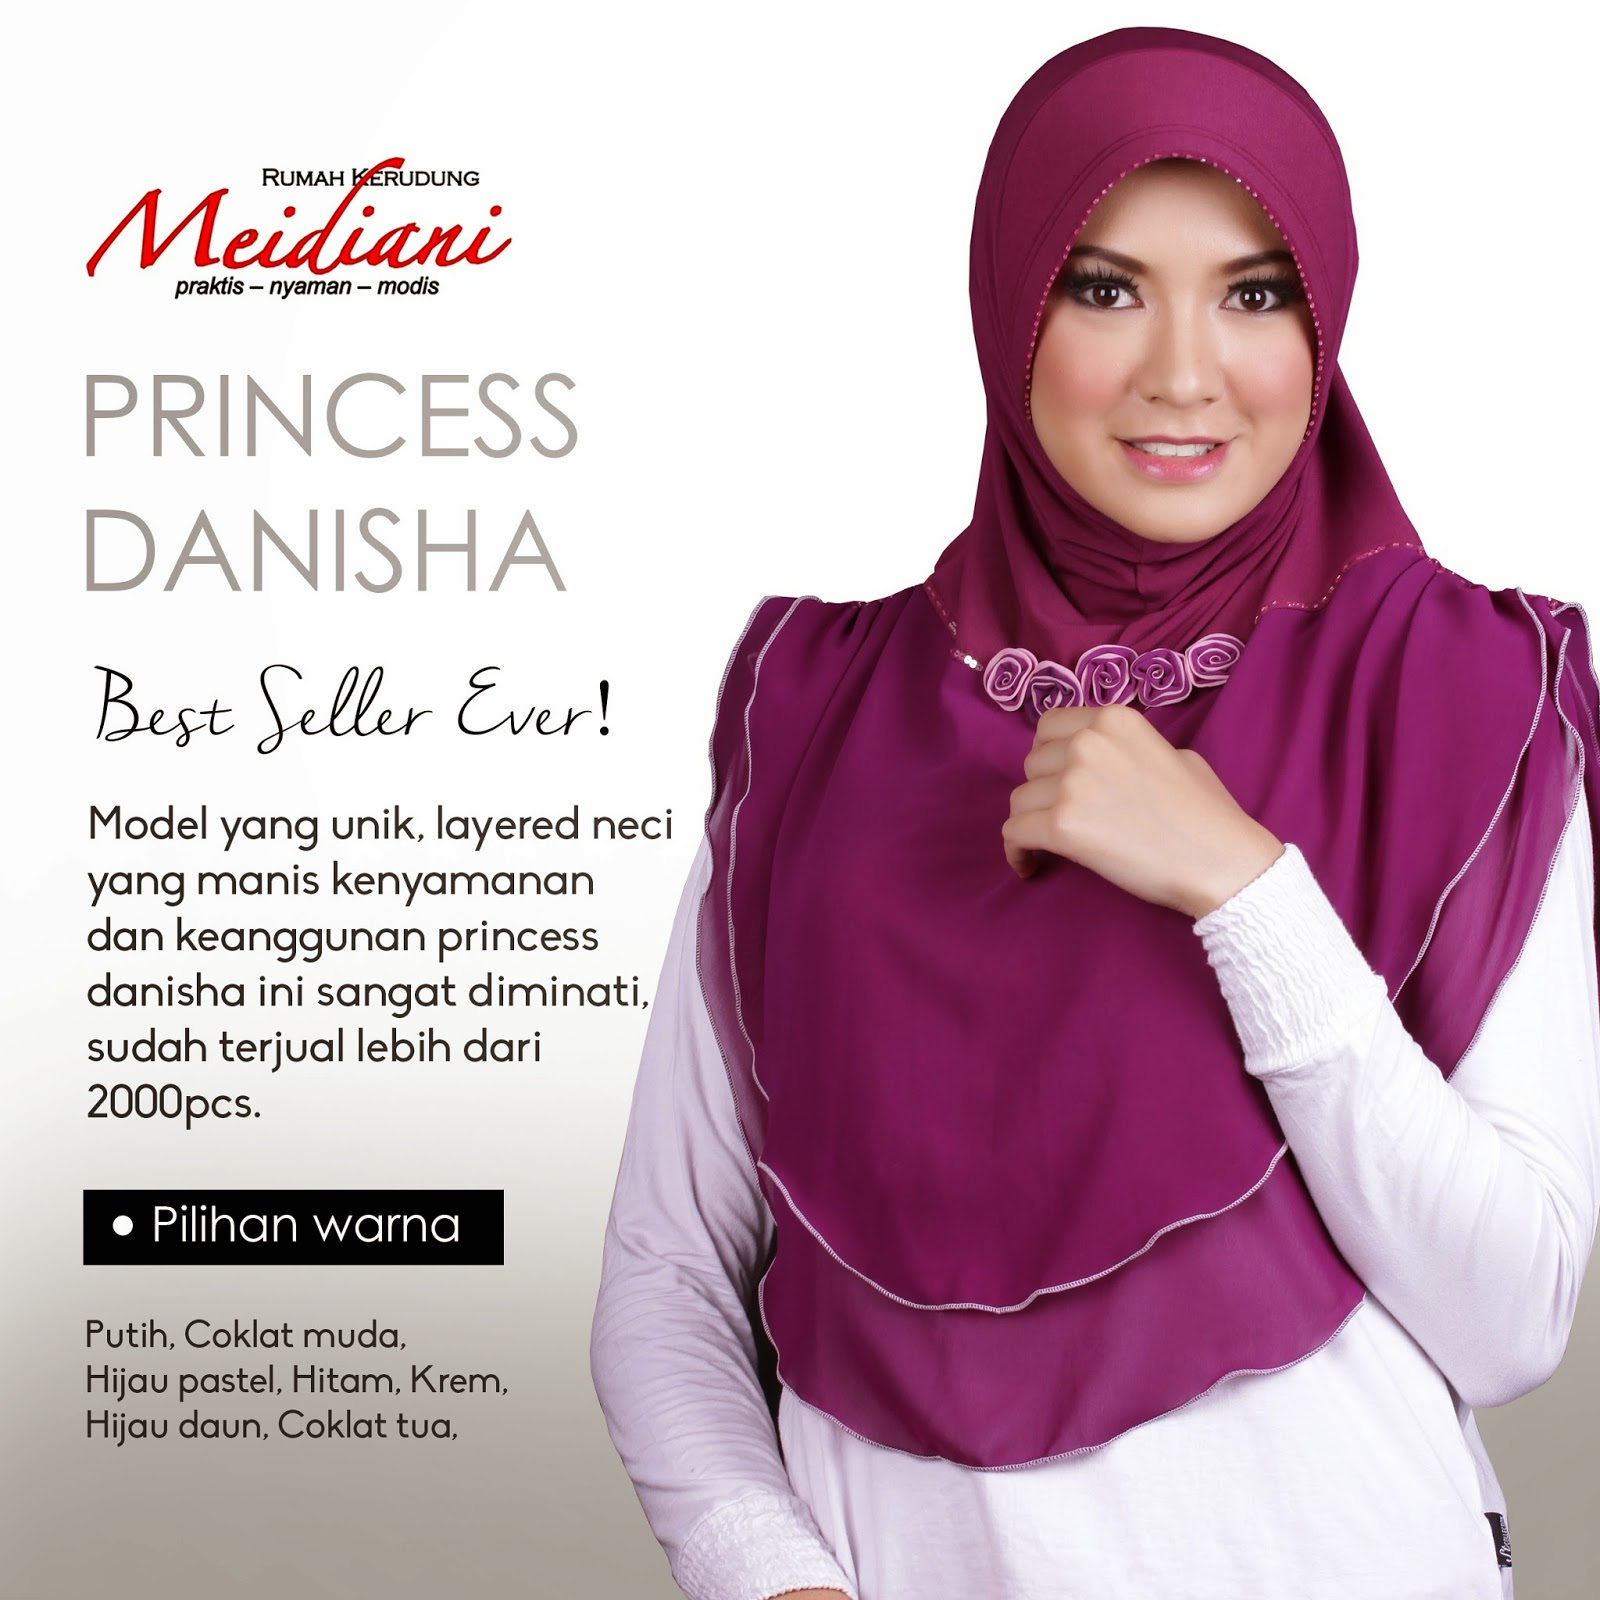 Princess Danisha